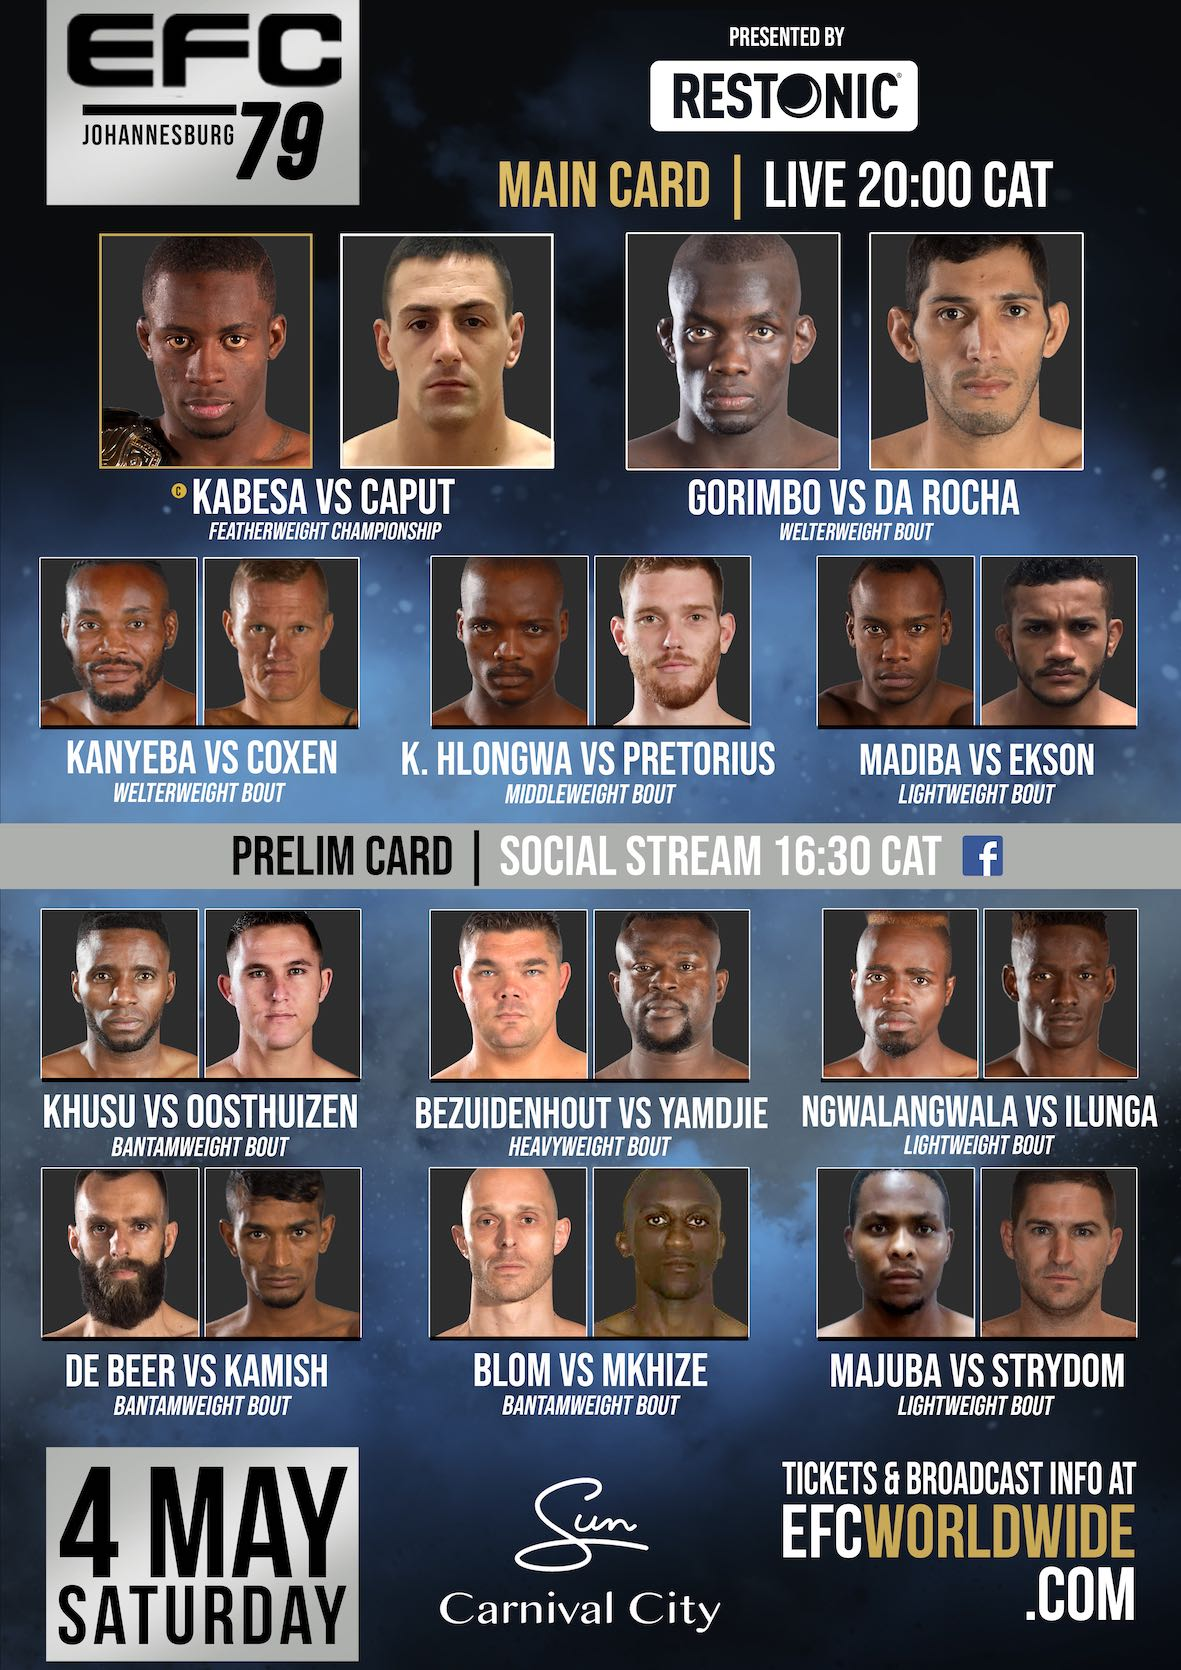 See the full fight card for EFC 79 featuring 11 exciting Mixed Martial Arts bouts